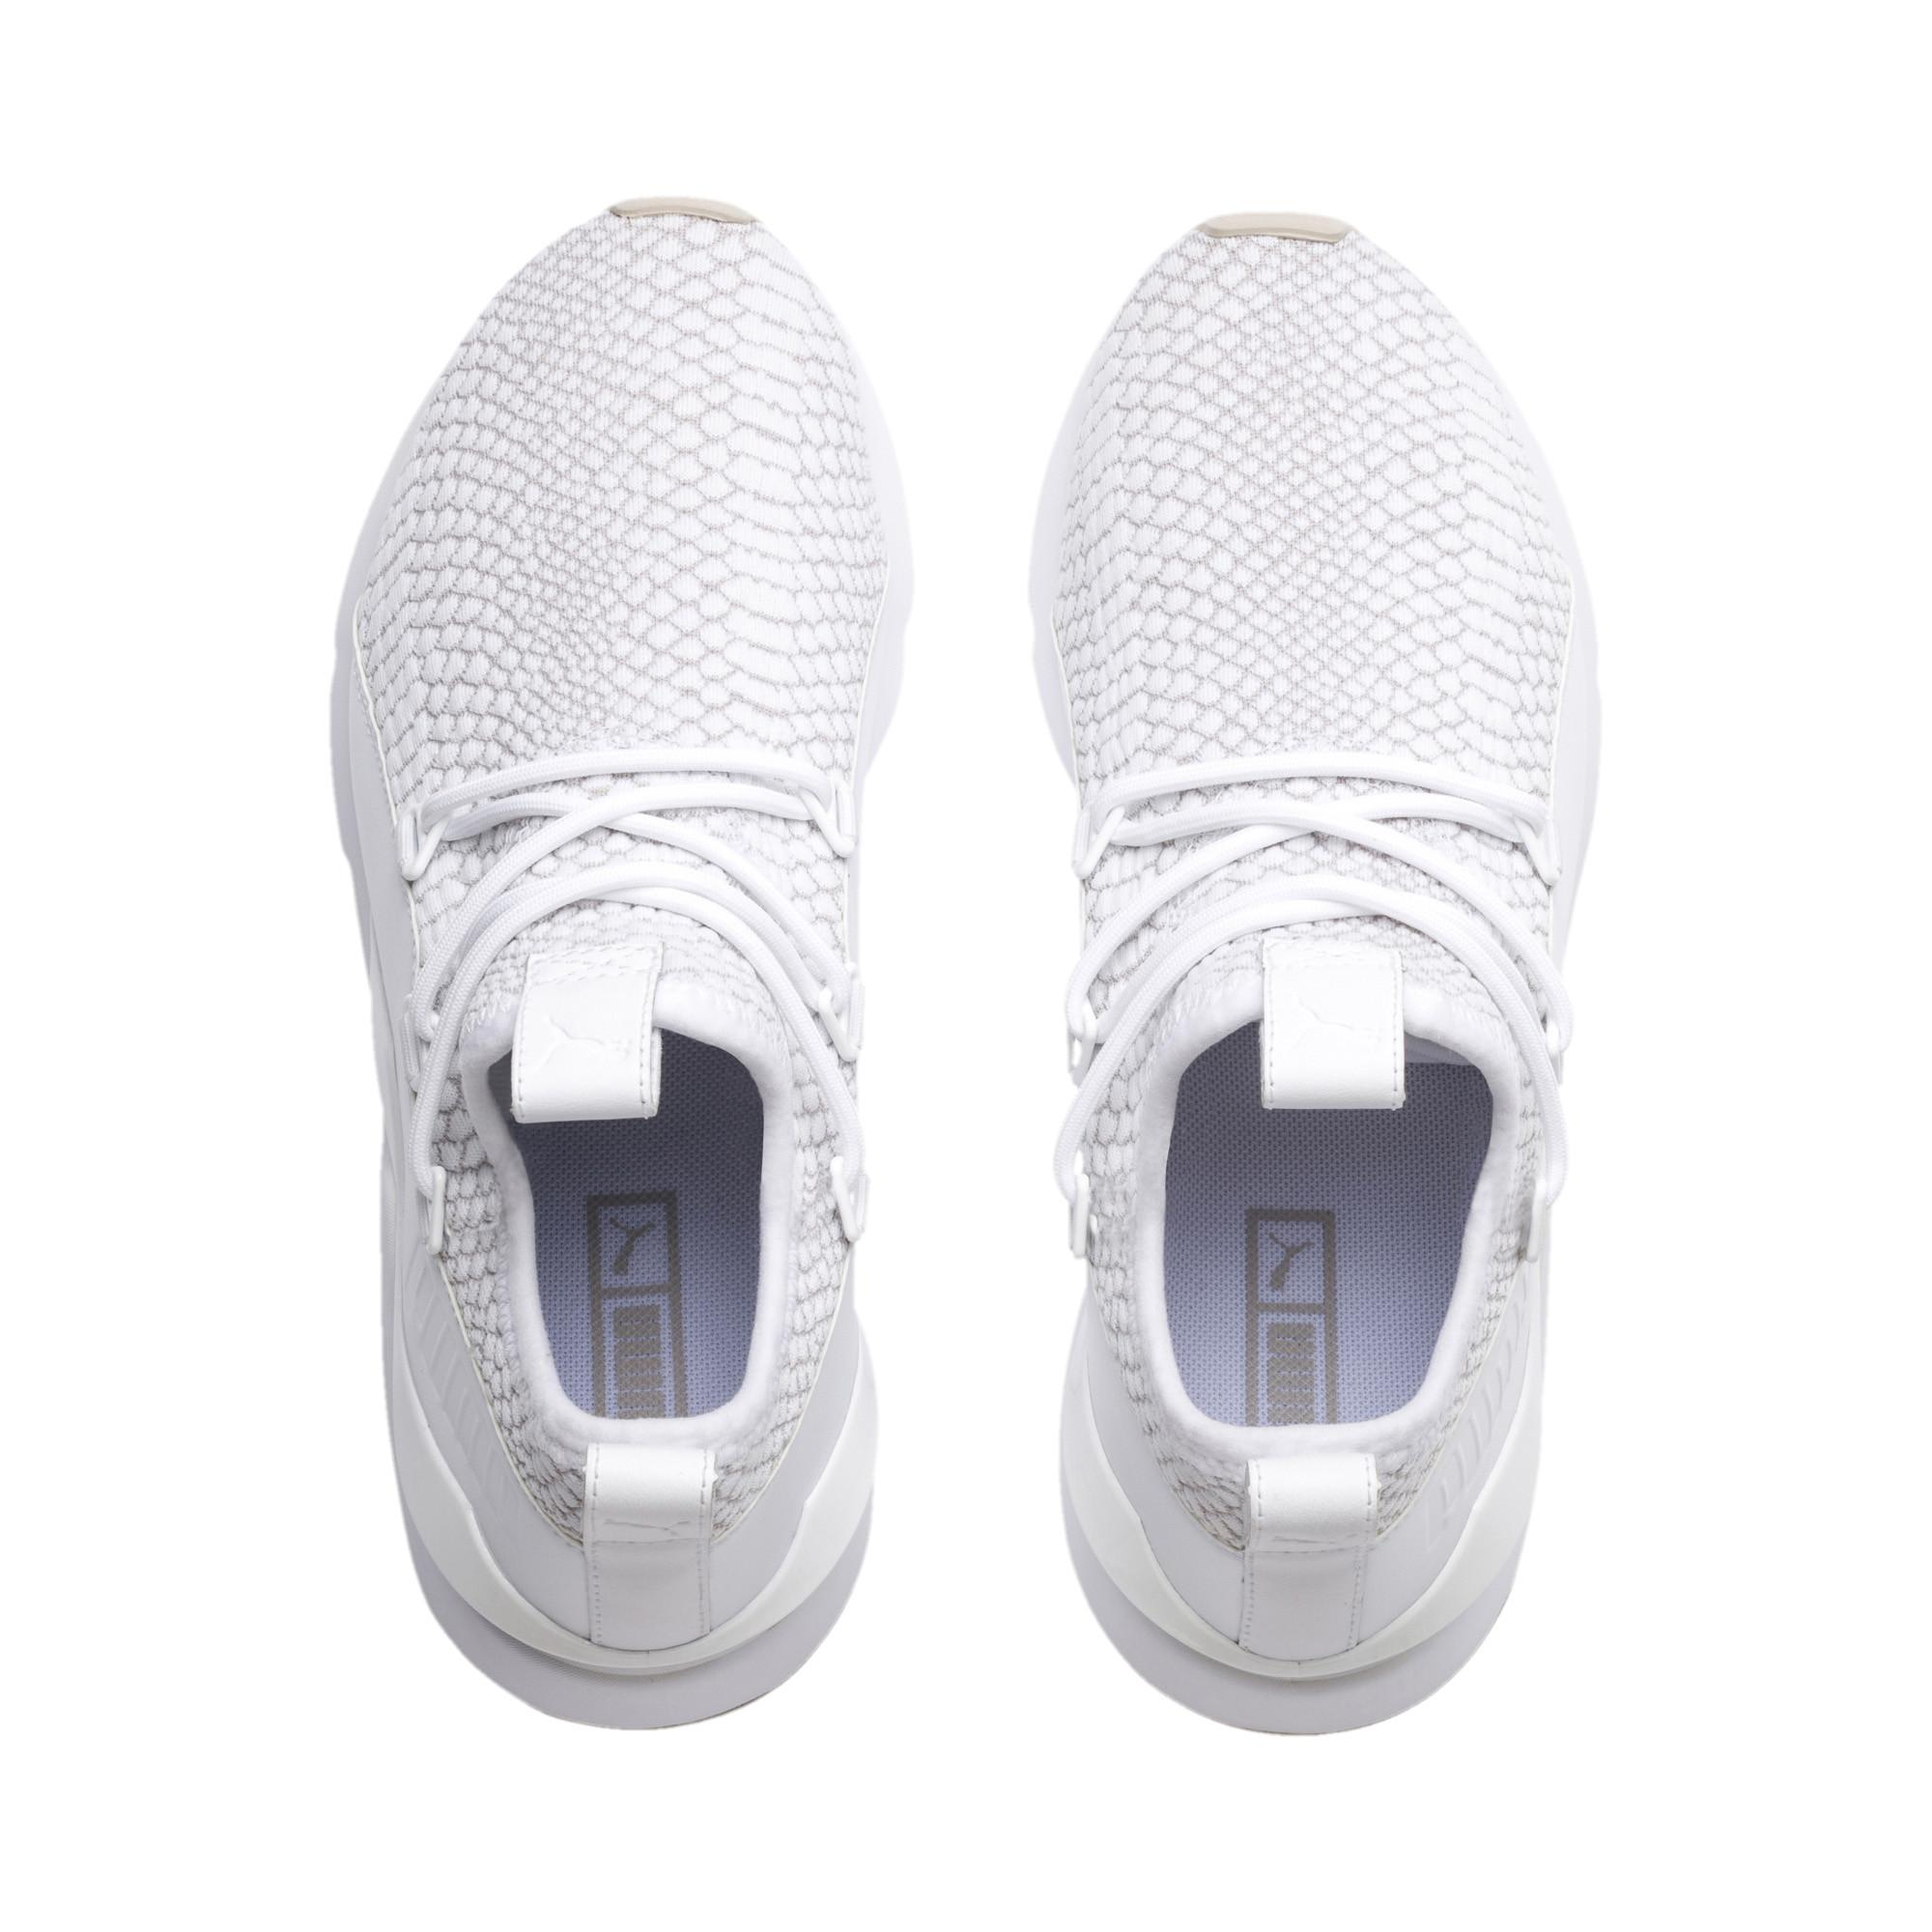 PUMA Synthetic Muse 2 Reptile